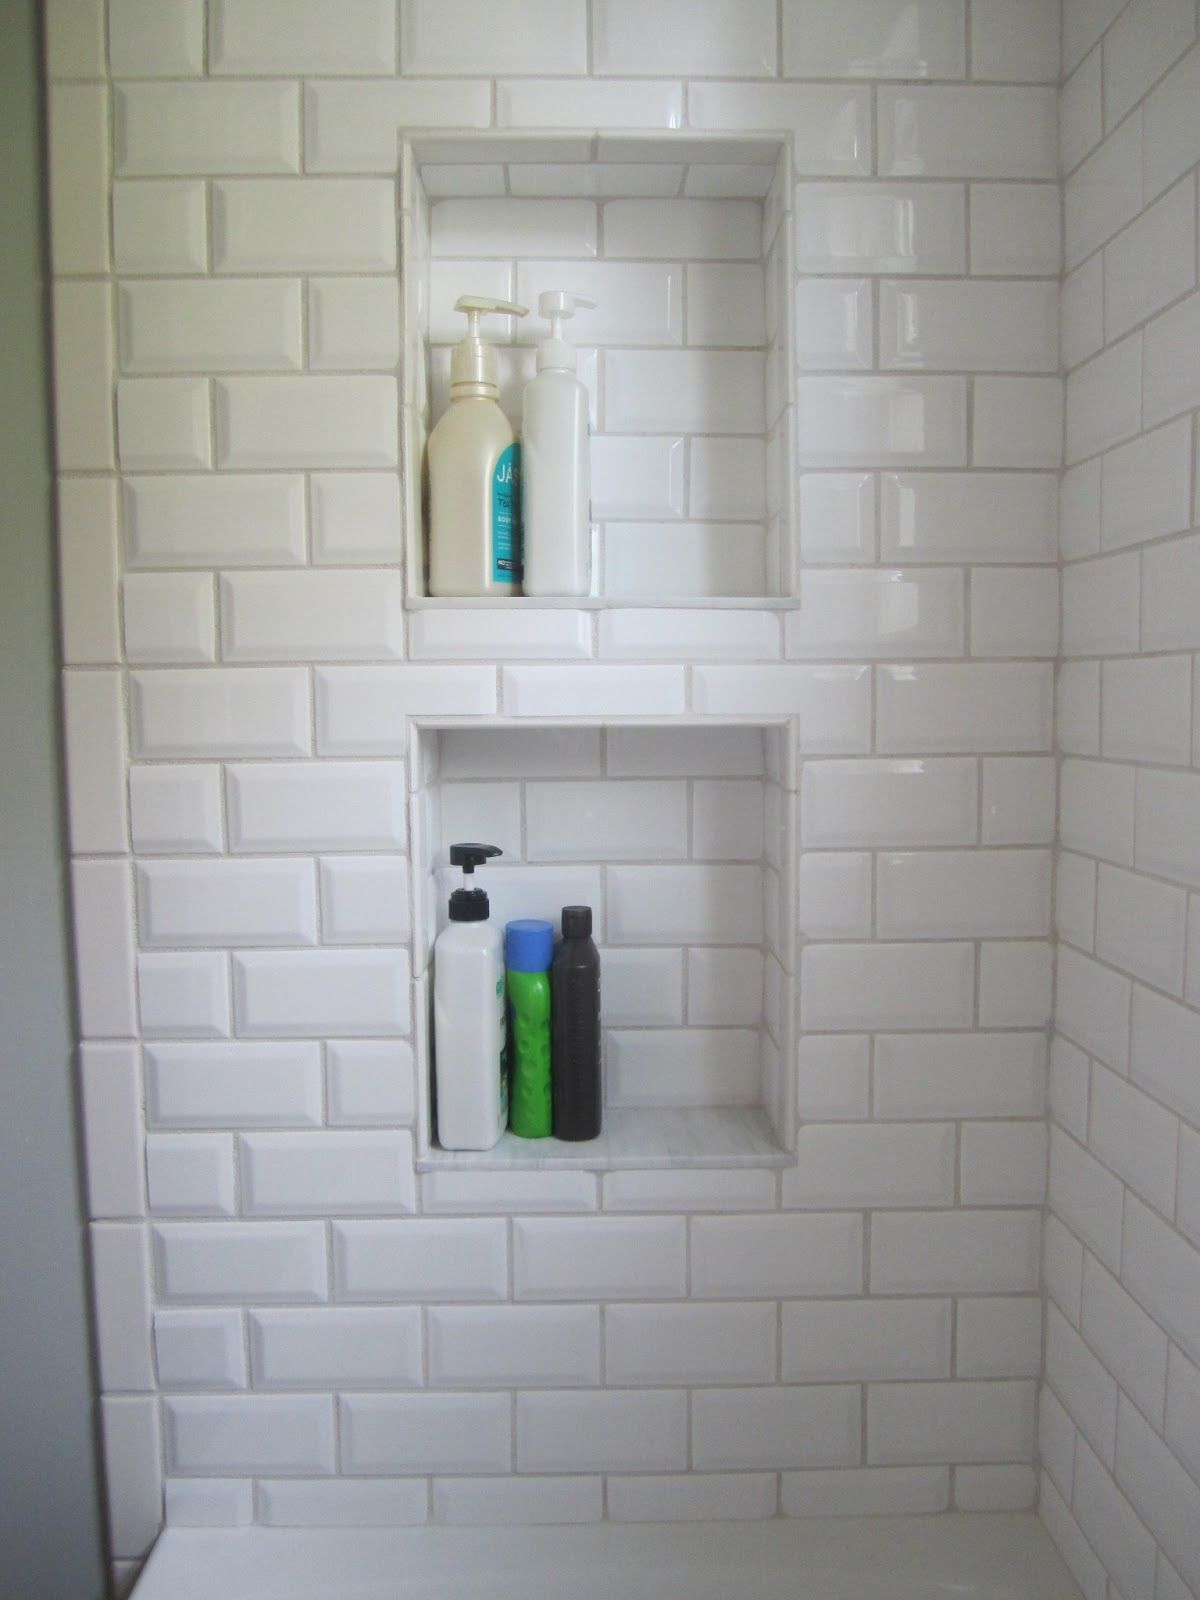 How To Tile A Window In The Shower   Google Search